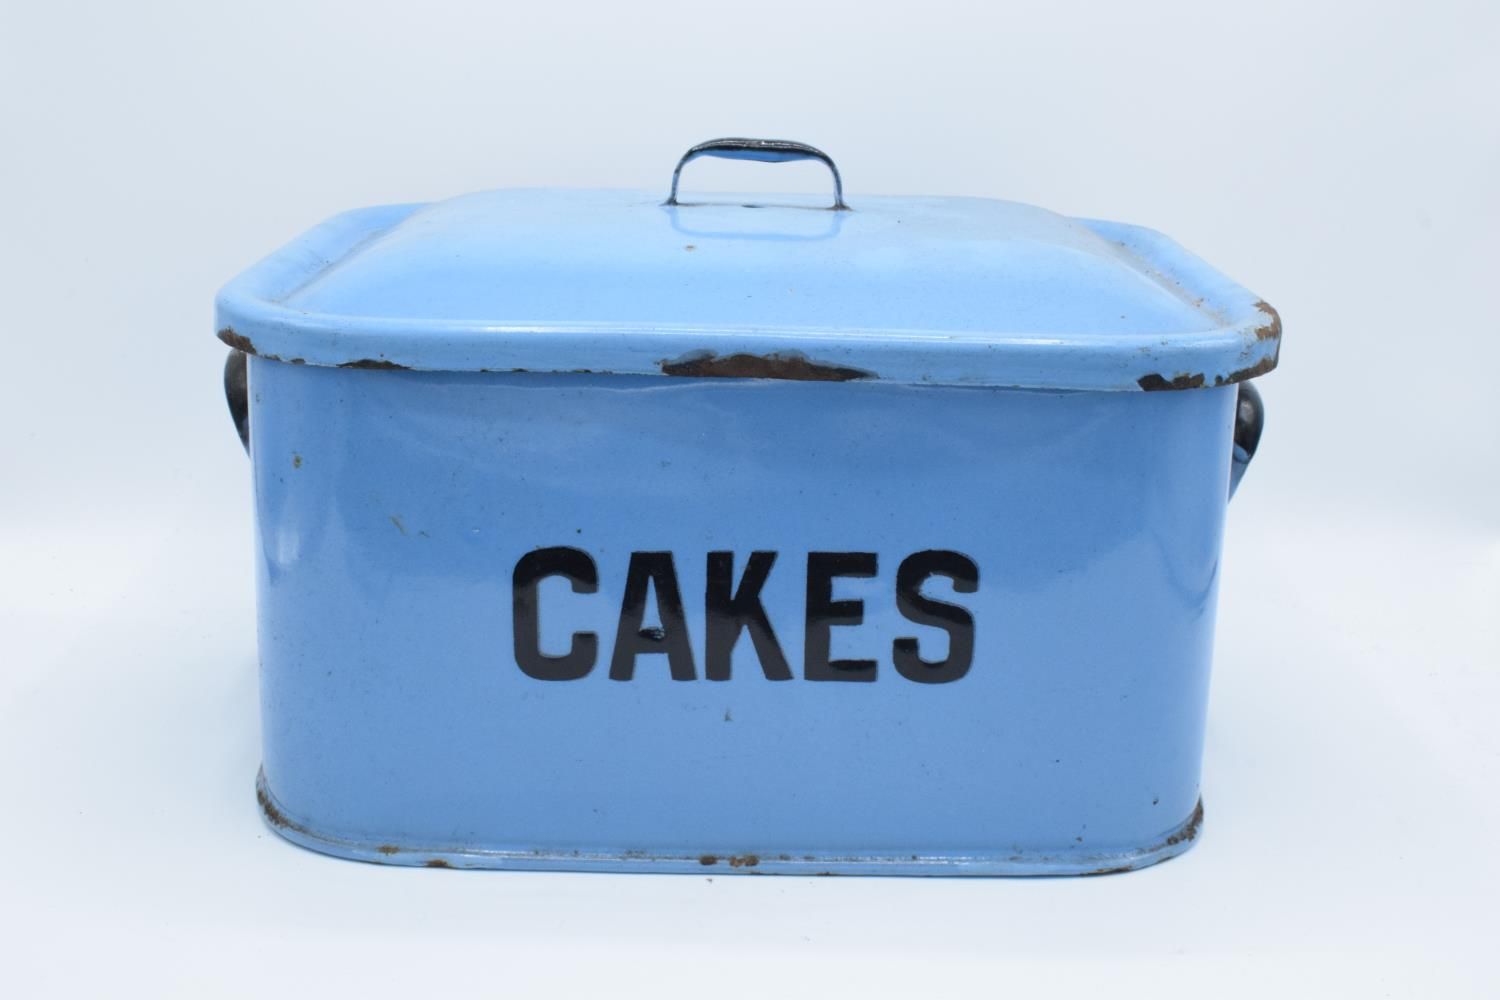 Original 1960s blue enamel cake tin (untouched condition) Loss of enamel in some places, slightly